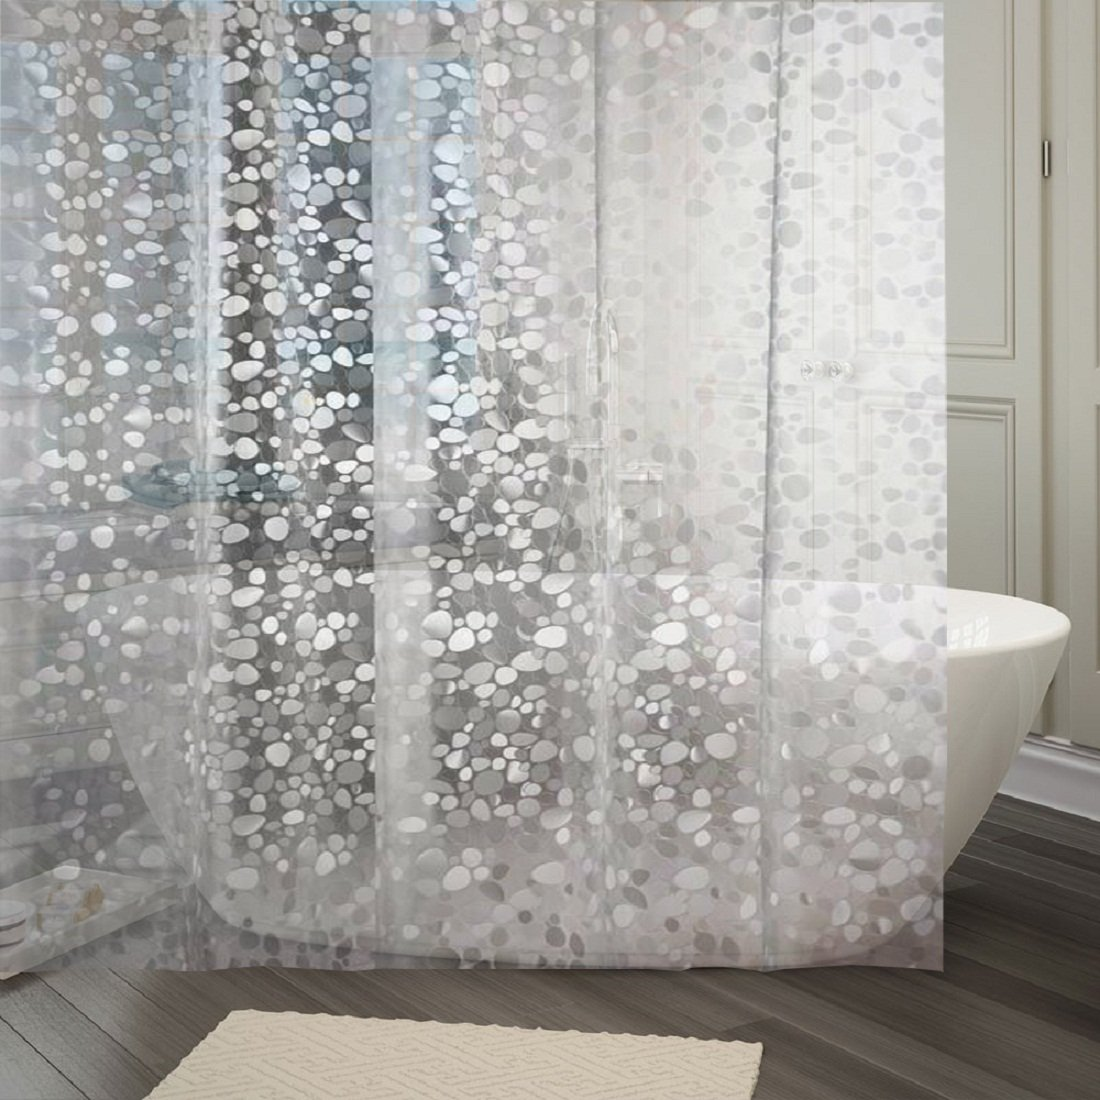 blackout thermal shower for concept of curtains paxton eclipse curtain ideas panel inspiration home furniture door inspirational design patio